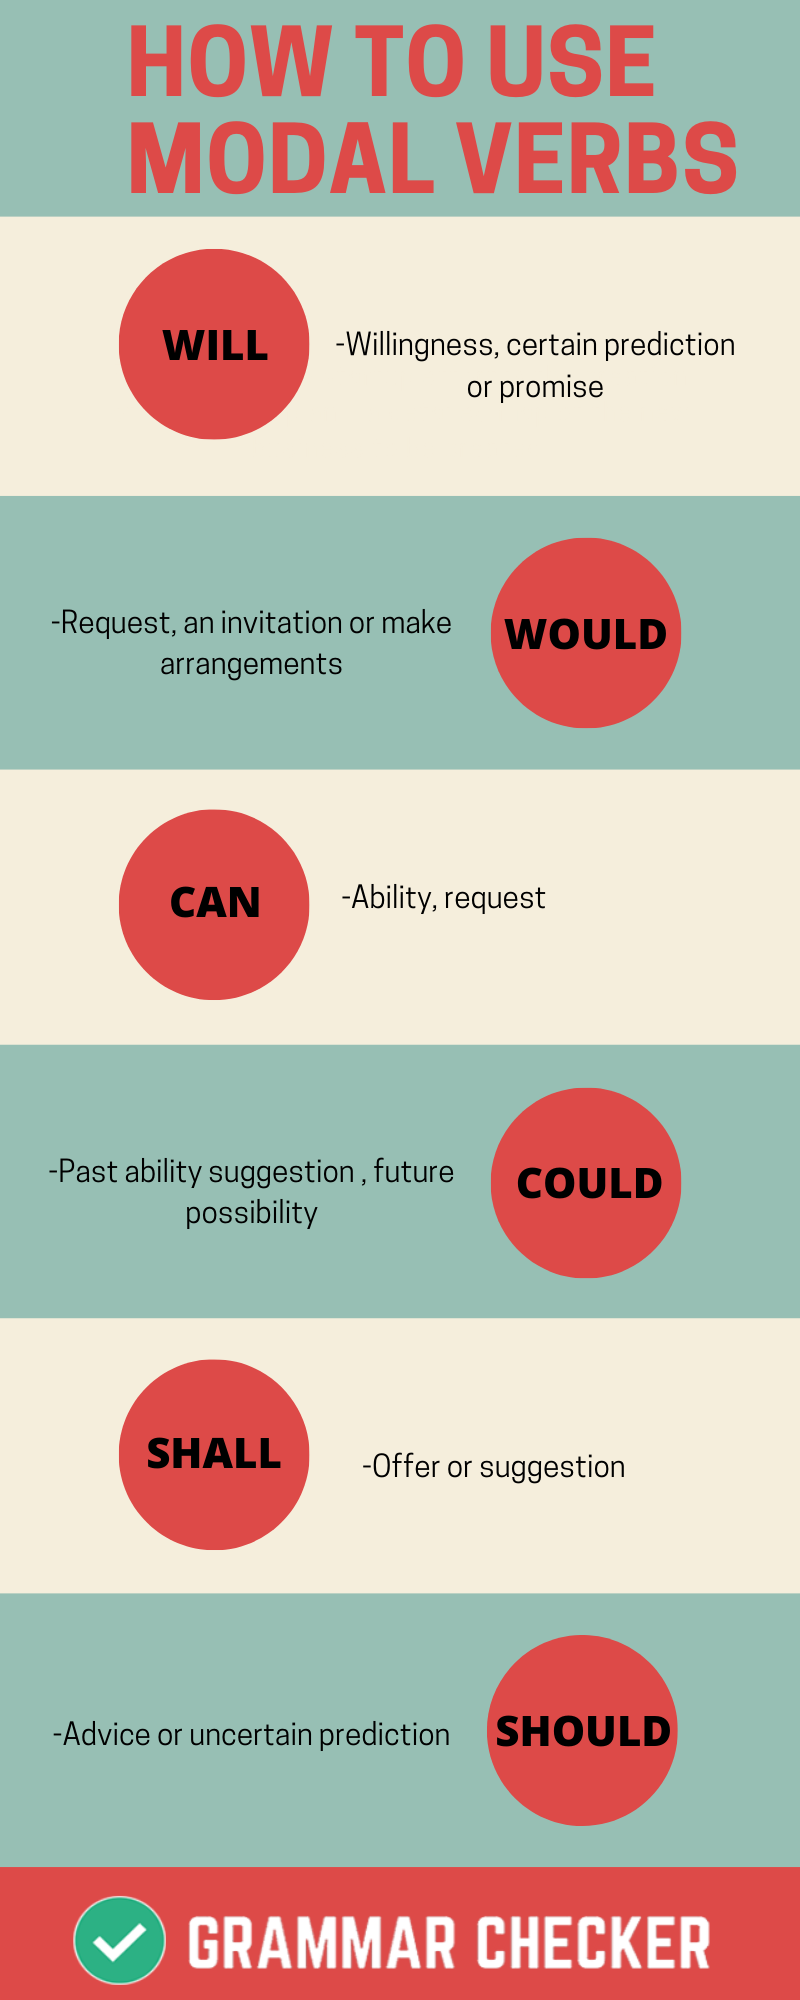 HOW TO USE MODAL VERBS (Infographic)